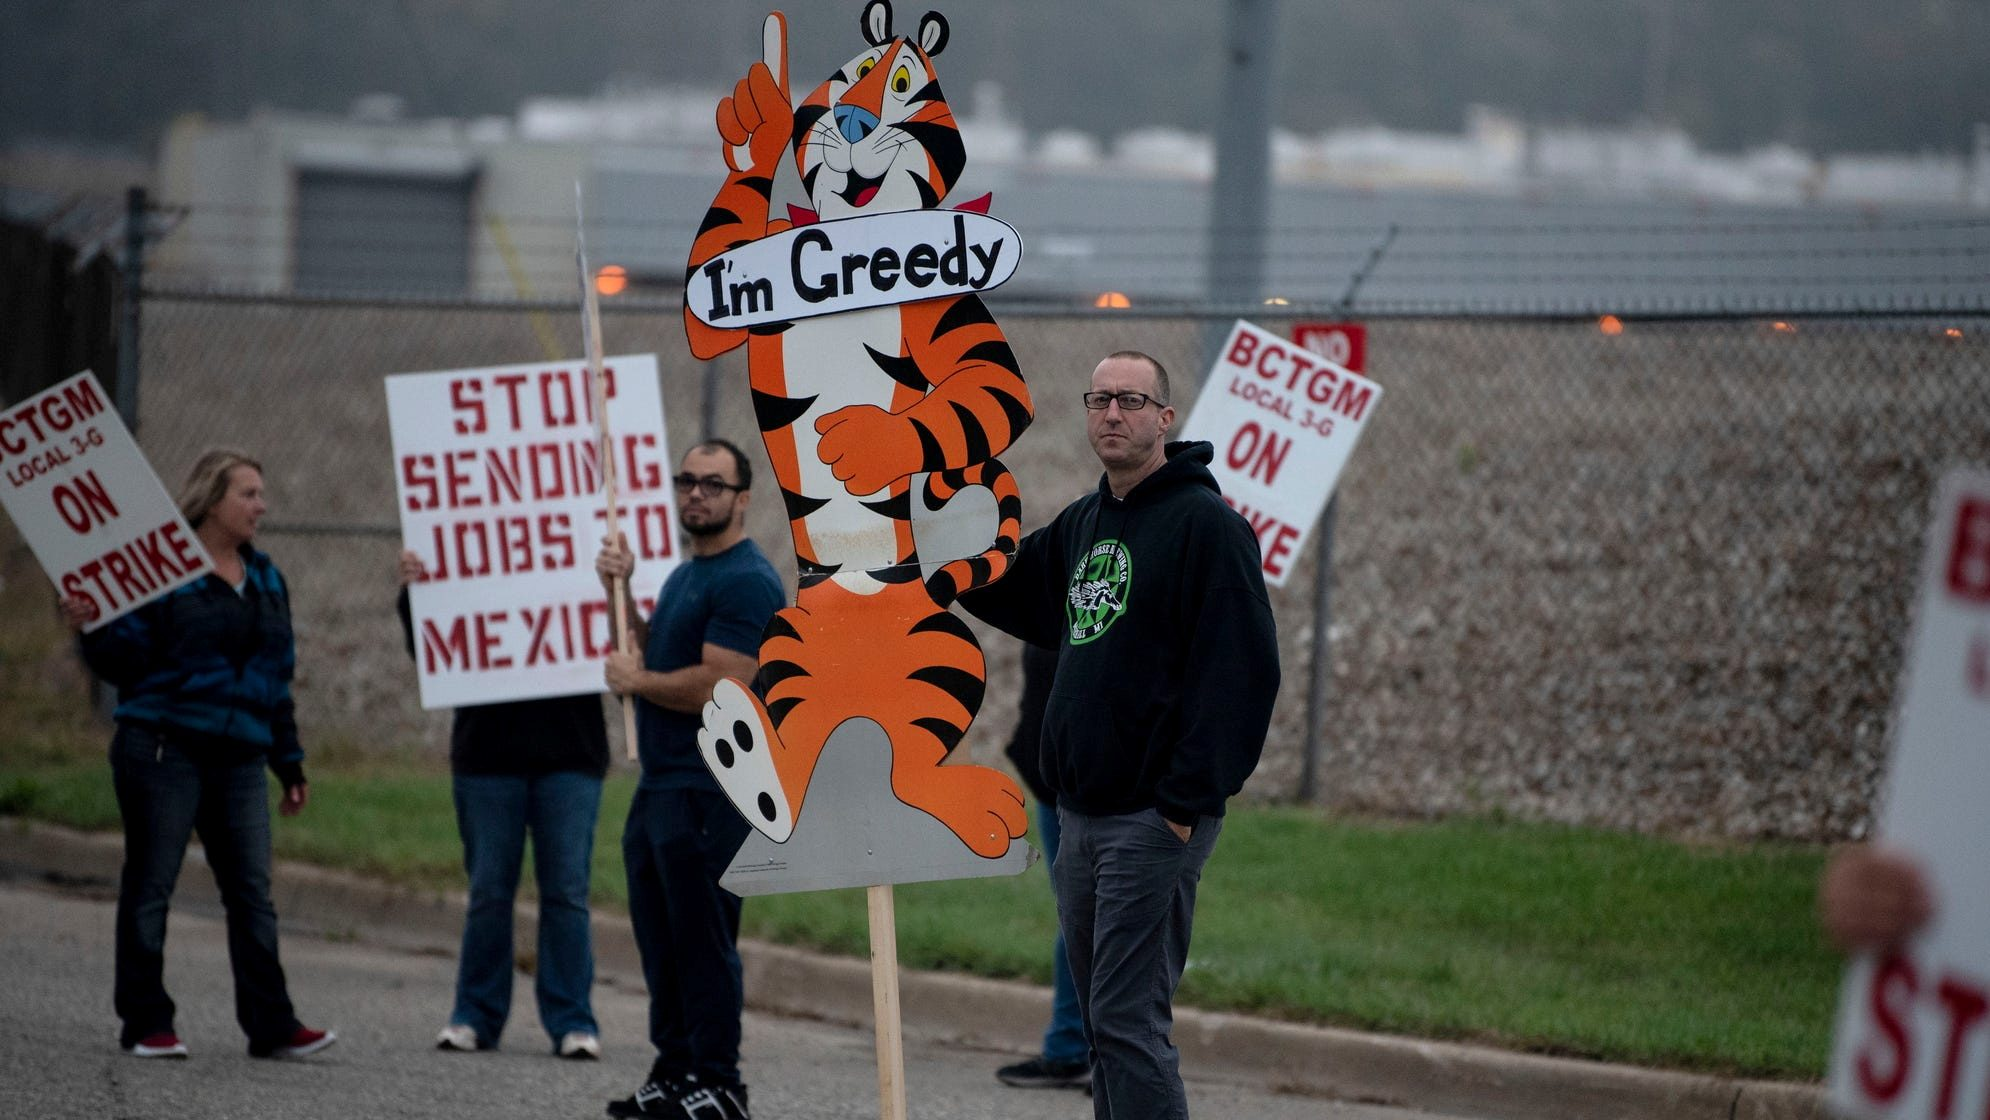 First shift worker Travis Huffman joins other BCTGM Local 3G union members in a strike